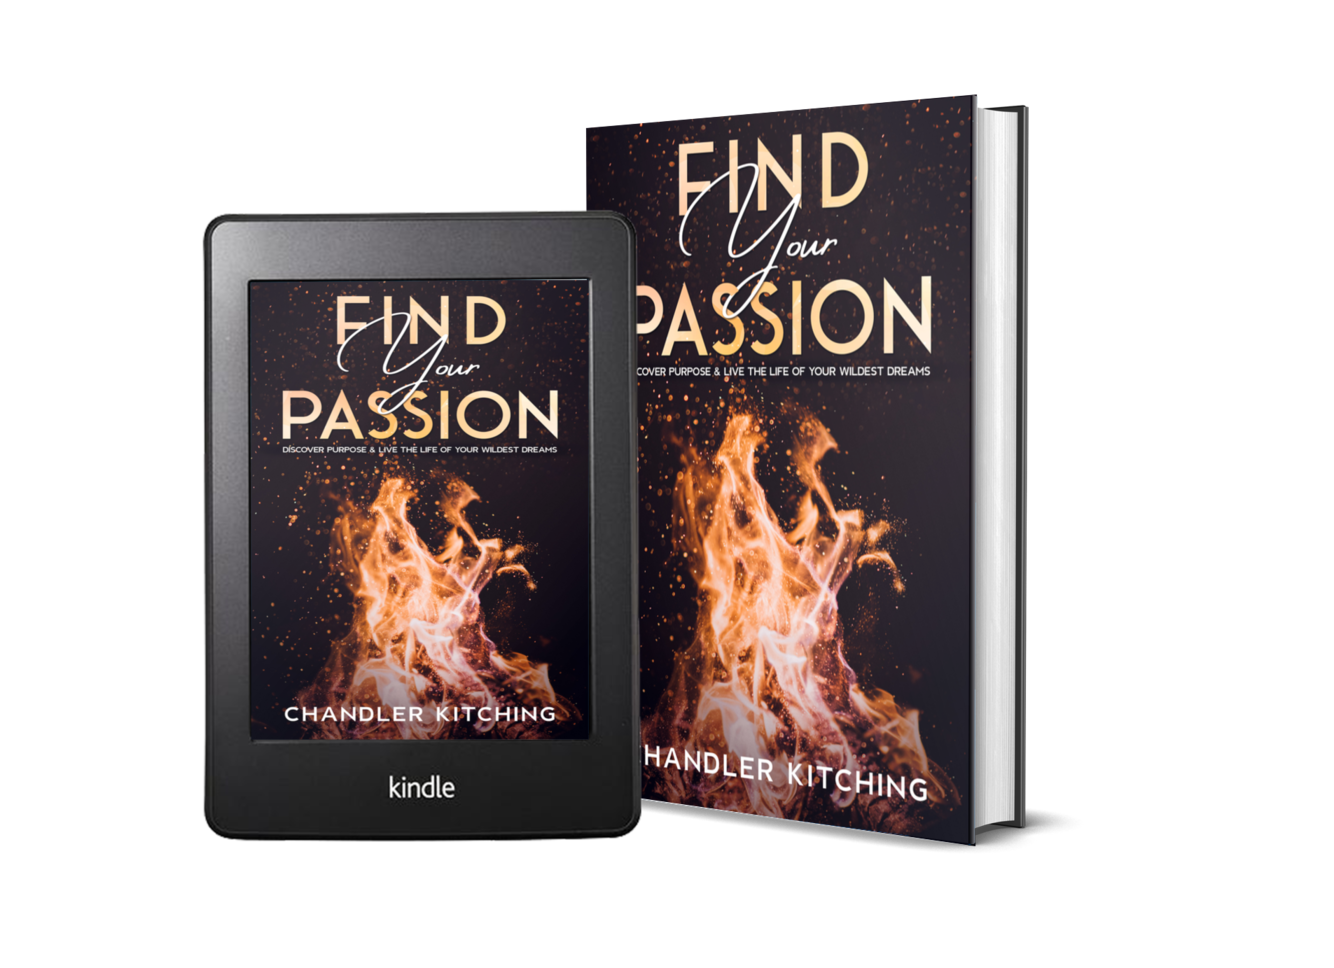 find your passion book by chandler kitchingfind your passion book by chandler kitching